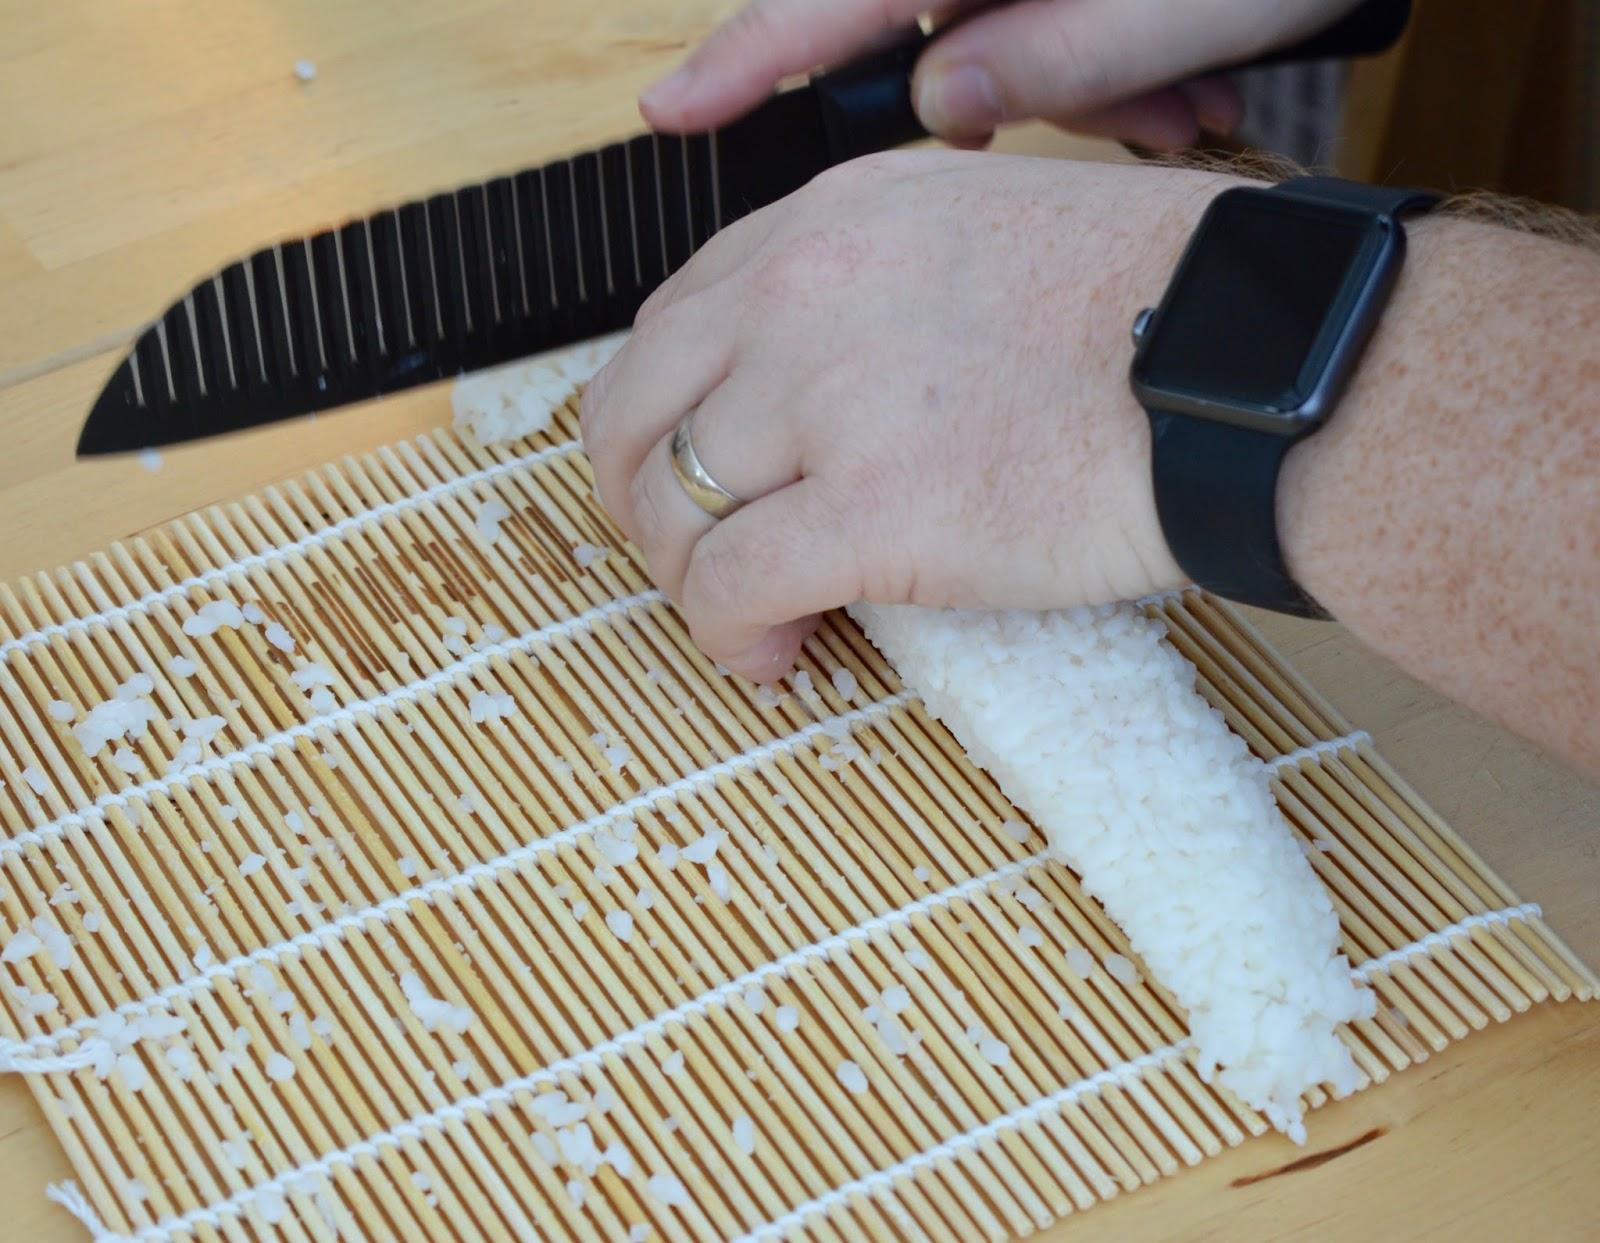 Sushi Making With Kids - A Tutorial for Beginners with Yutaka